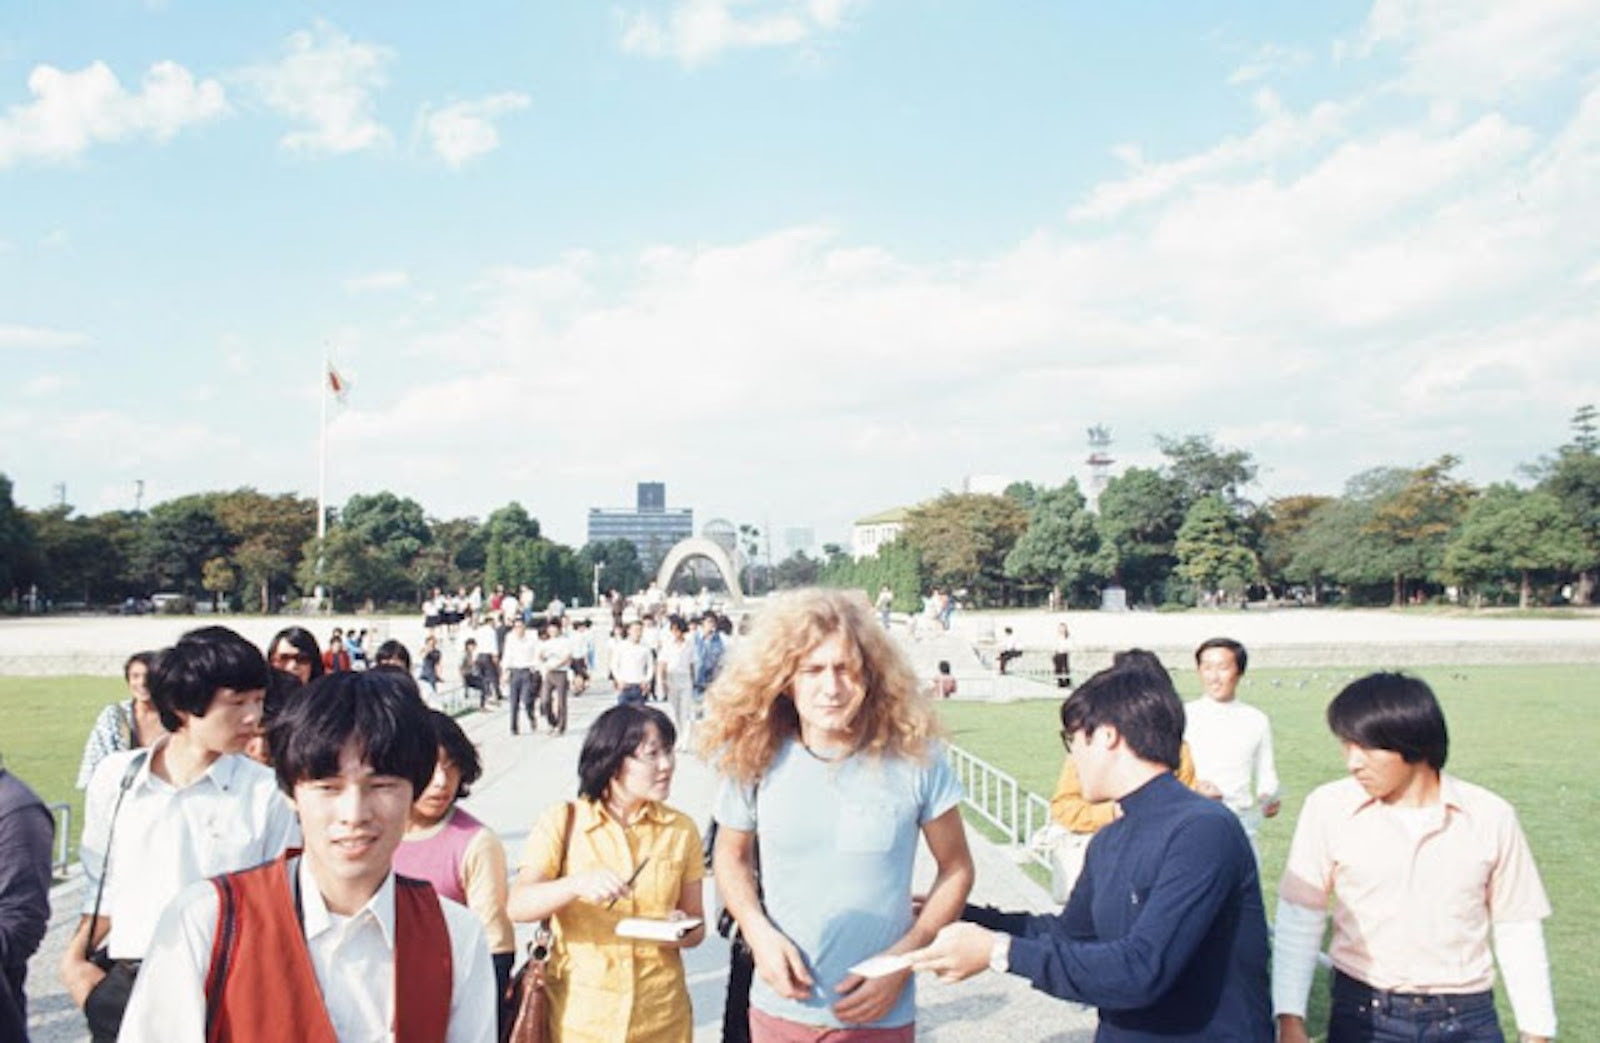 rock-stars-as-tourists-in-japan-1970s-80s-6.jpg